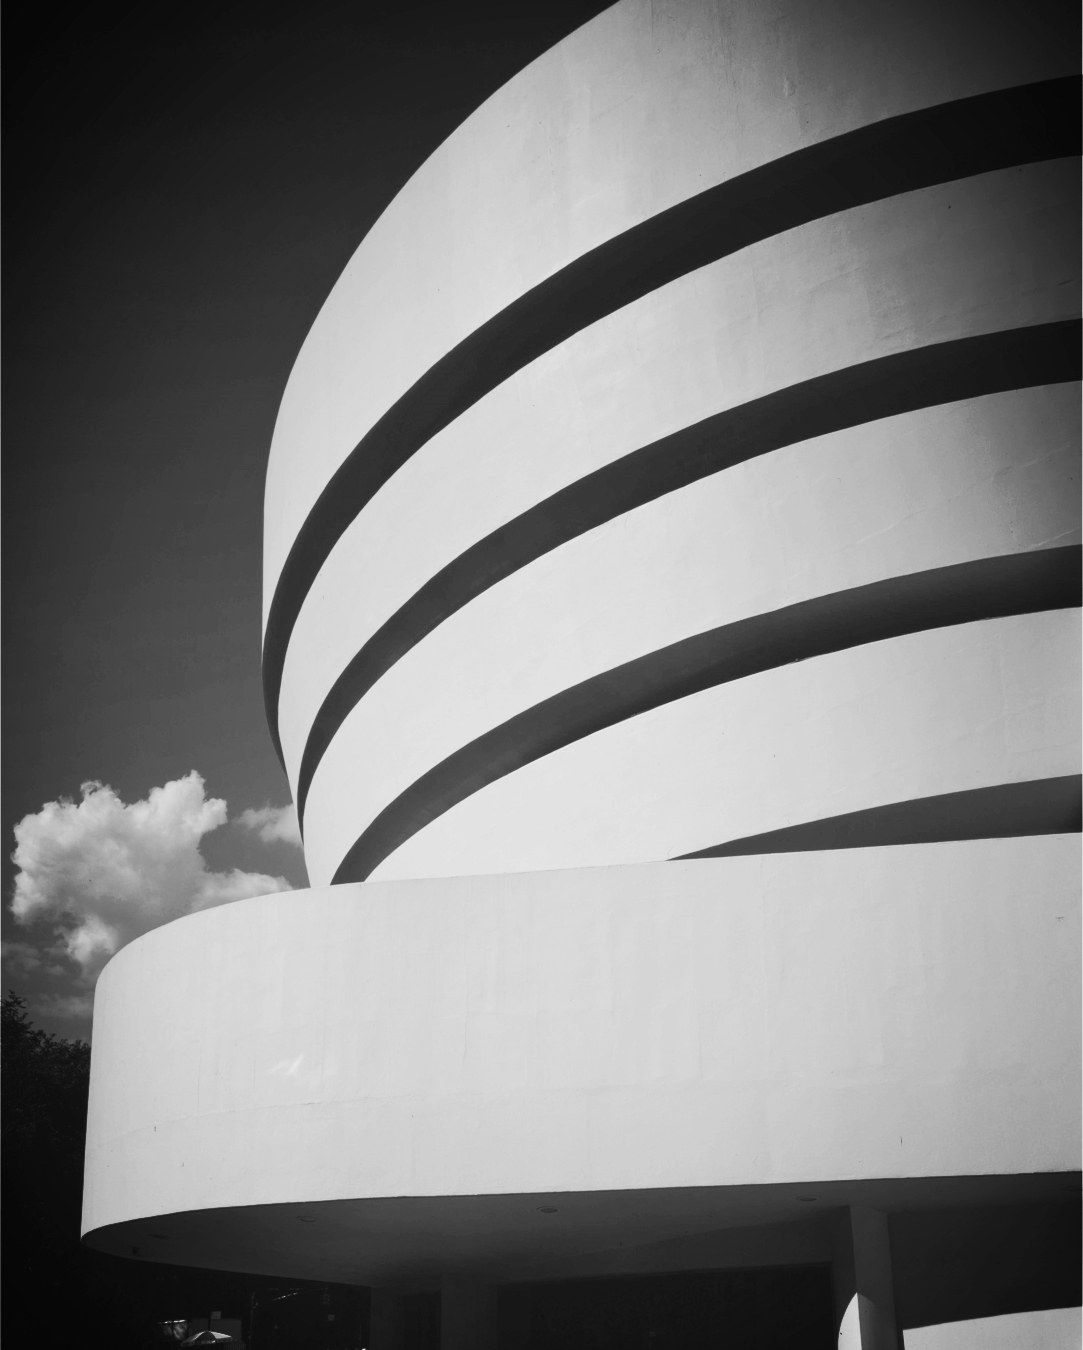 Solomon R. Guggenheim Museum New York (expansion and renovation) - 1988-1992 (Charles Gwathmey)